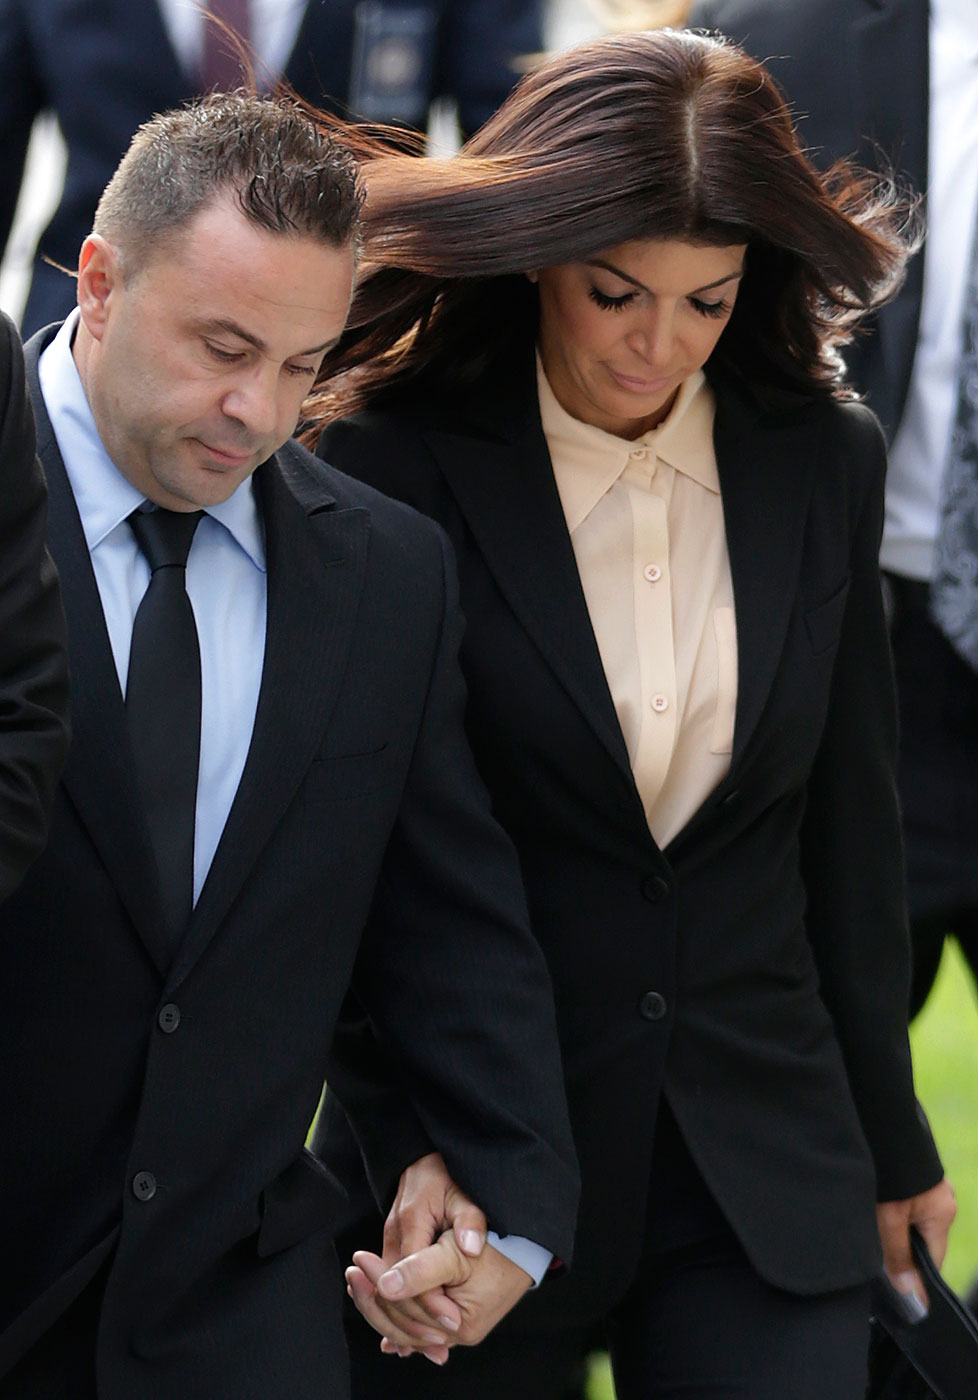 The Real Housewives of New Jersey  stars Giuseppe  Joe  Giudice, left, and his wife, Teresa Giudice, of Montville Township, N.J., walk toward Martin Luther King Jr. Courthouse before a court appearance, Thursday, Oct. 2, 2014, in Newark, N.J.